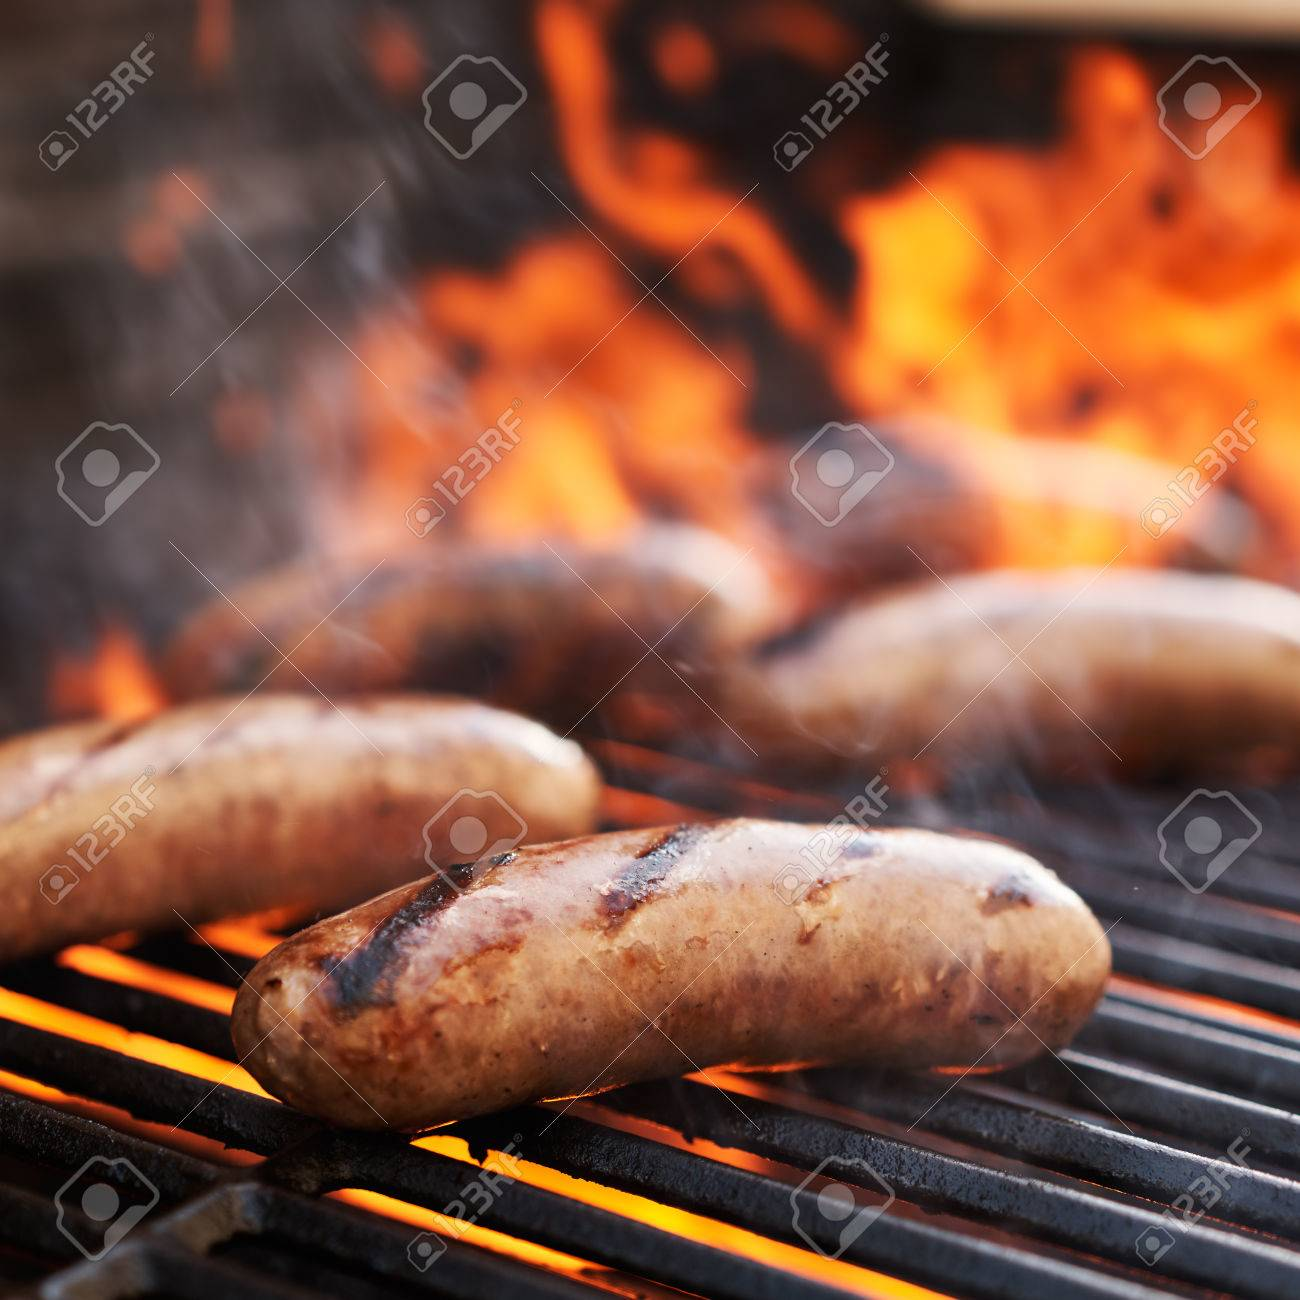 bratwurst sausage barbecue cooking on grill top with flames - 55030137